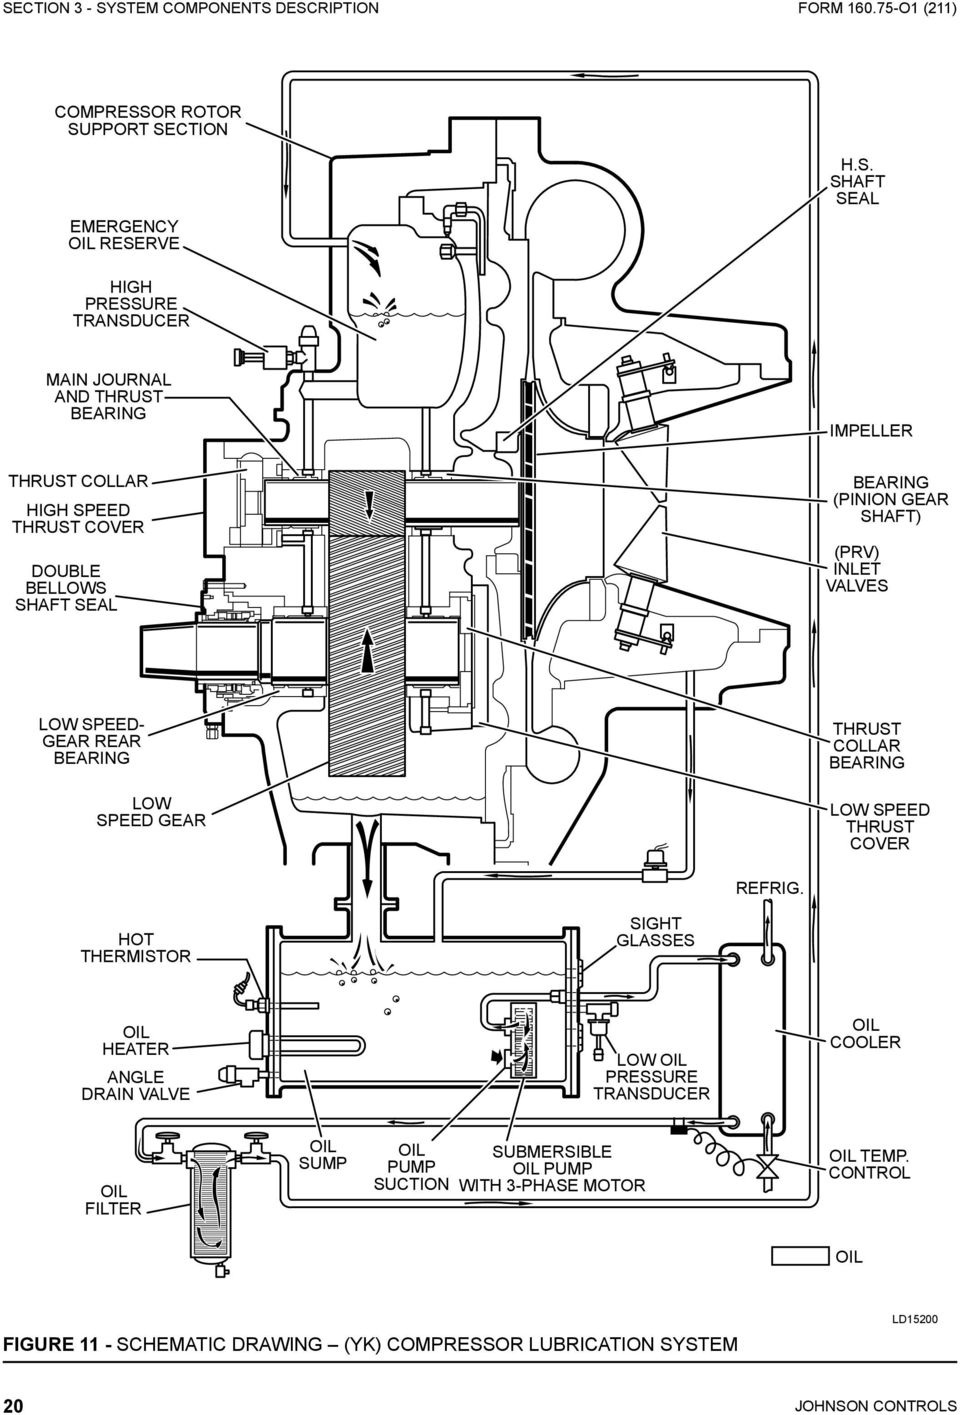 Model Yk Style G R 134a With Optiview Tm Control Center For York Air Handler Wiring Diagram Of Speed 2 Gear Thrust Collar Bearing Low Cover Refrig